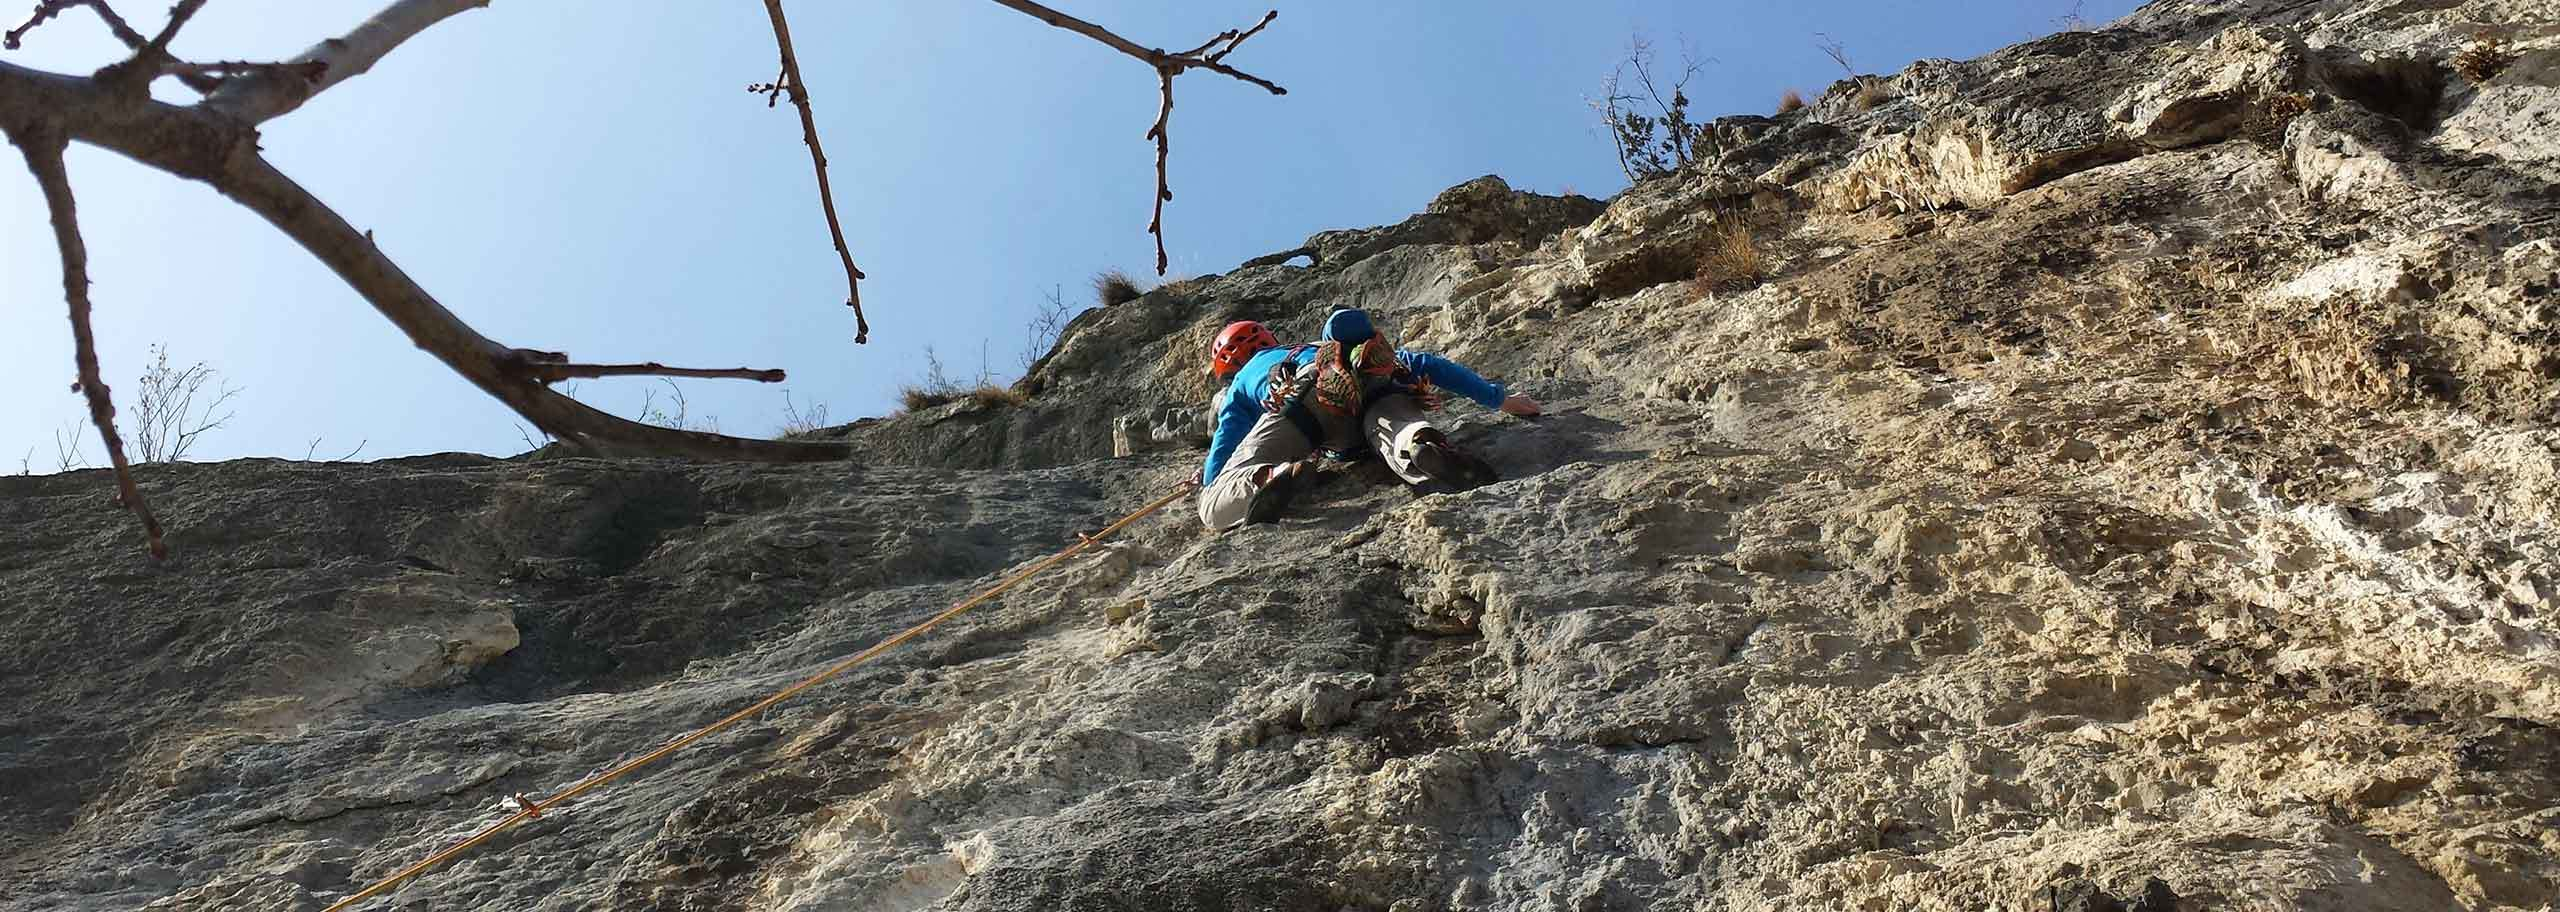 Climbing with a Mountain Guide in Solda